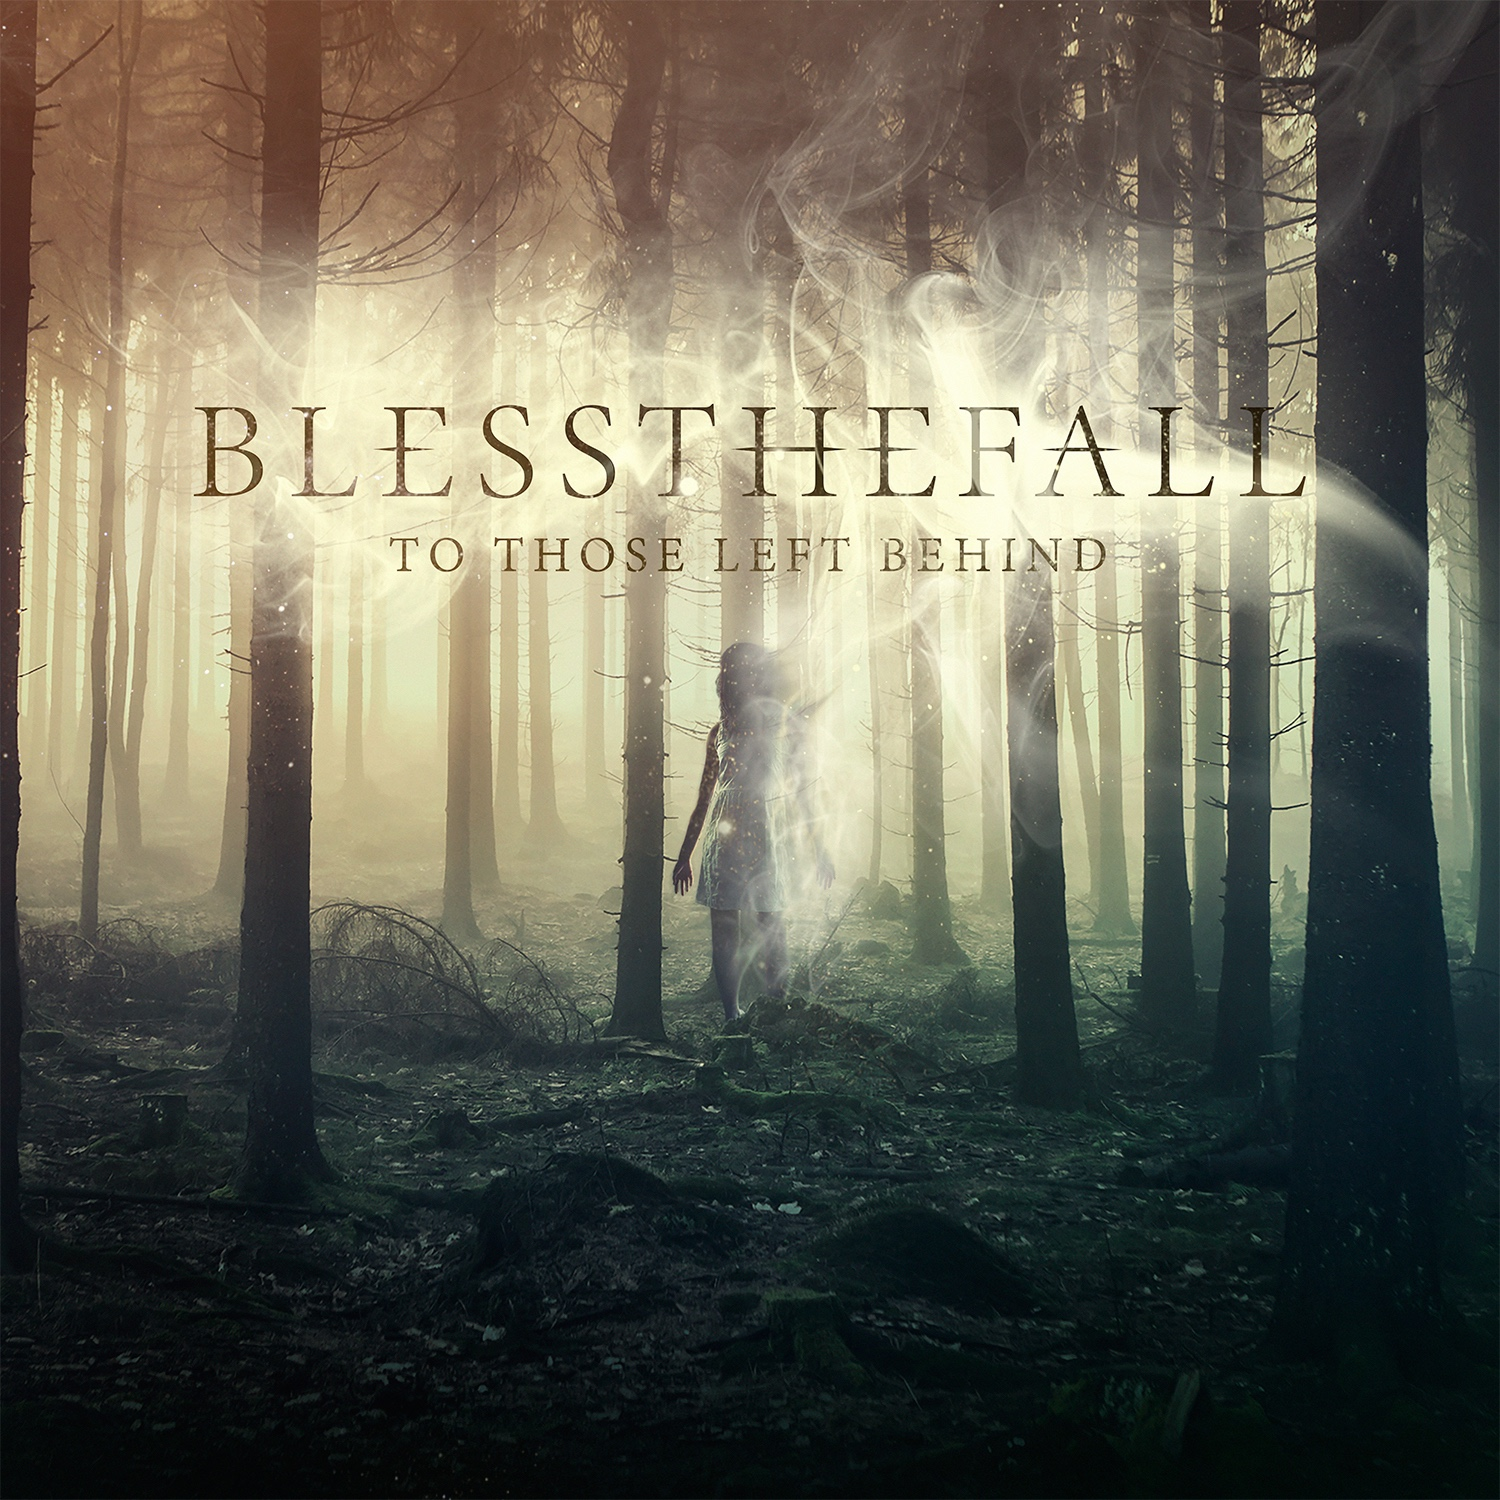 blessthefall – Dead Air [New Song] (2015)